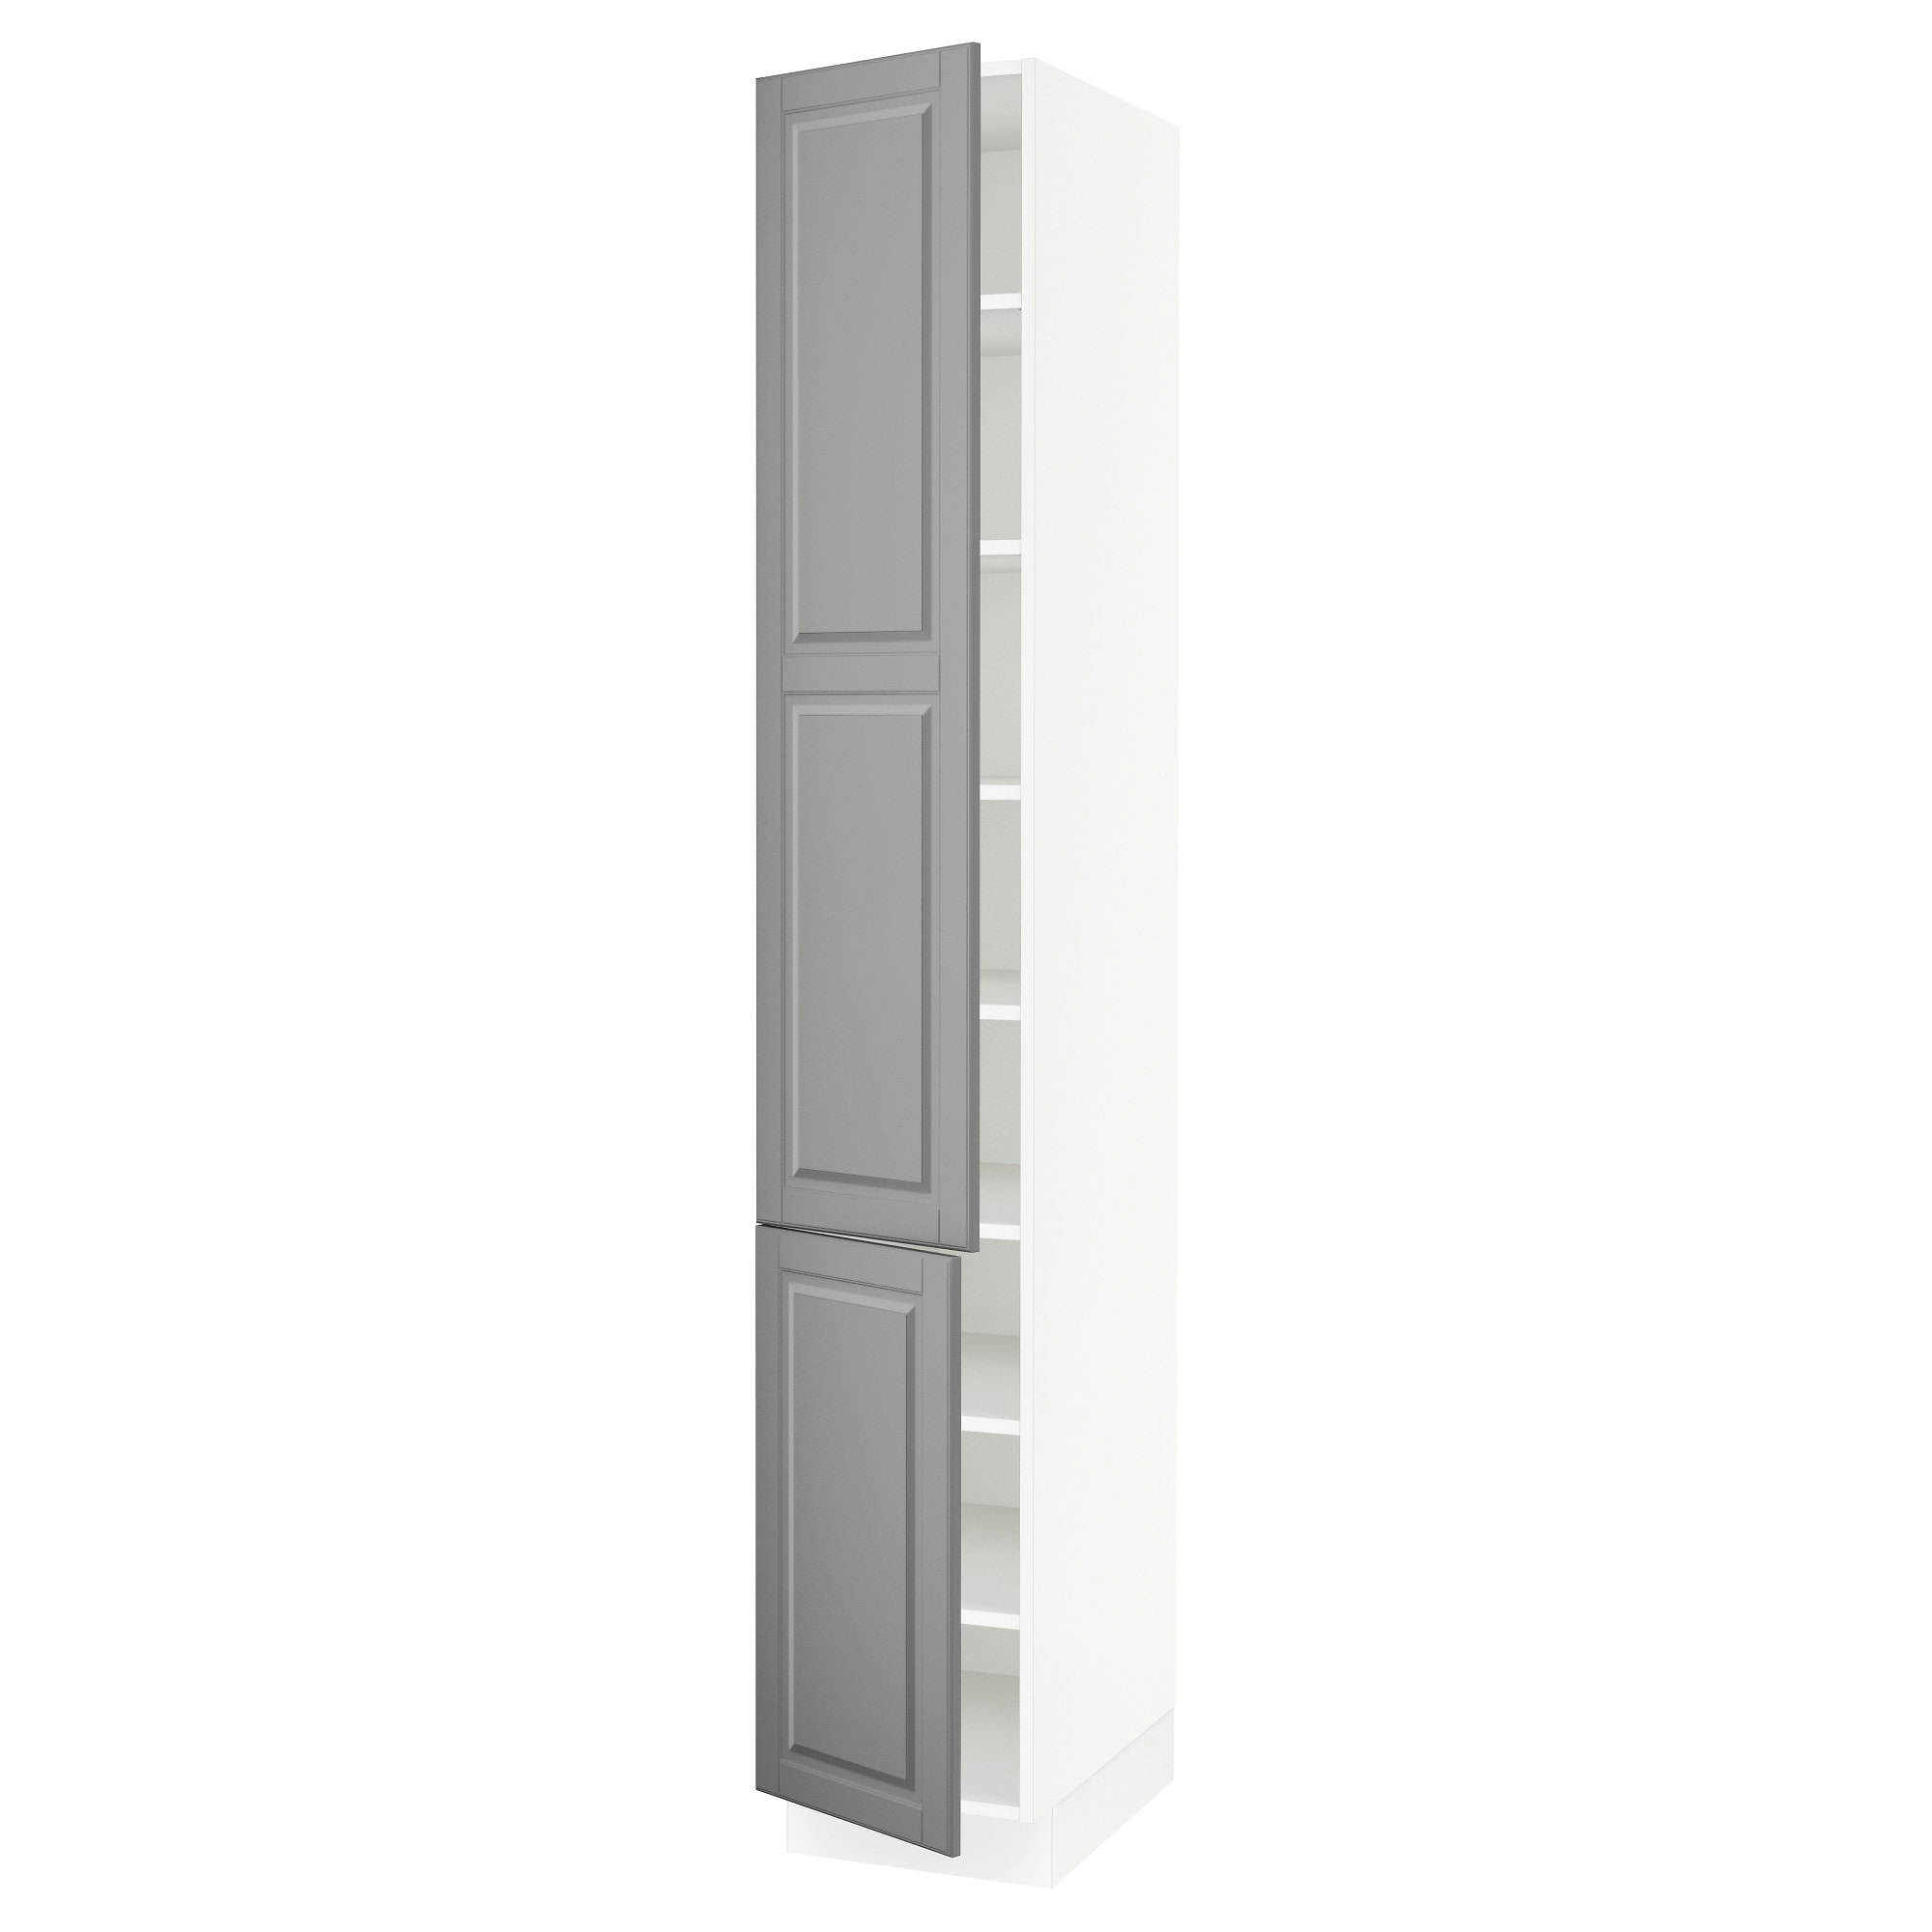 SEKTION high cabinet with shelves  2 doors white Bodbyn gray Width 15 Tall Kitchen Cabinets System IKEA